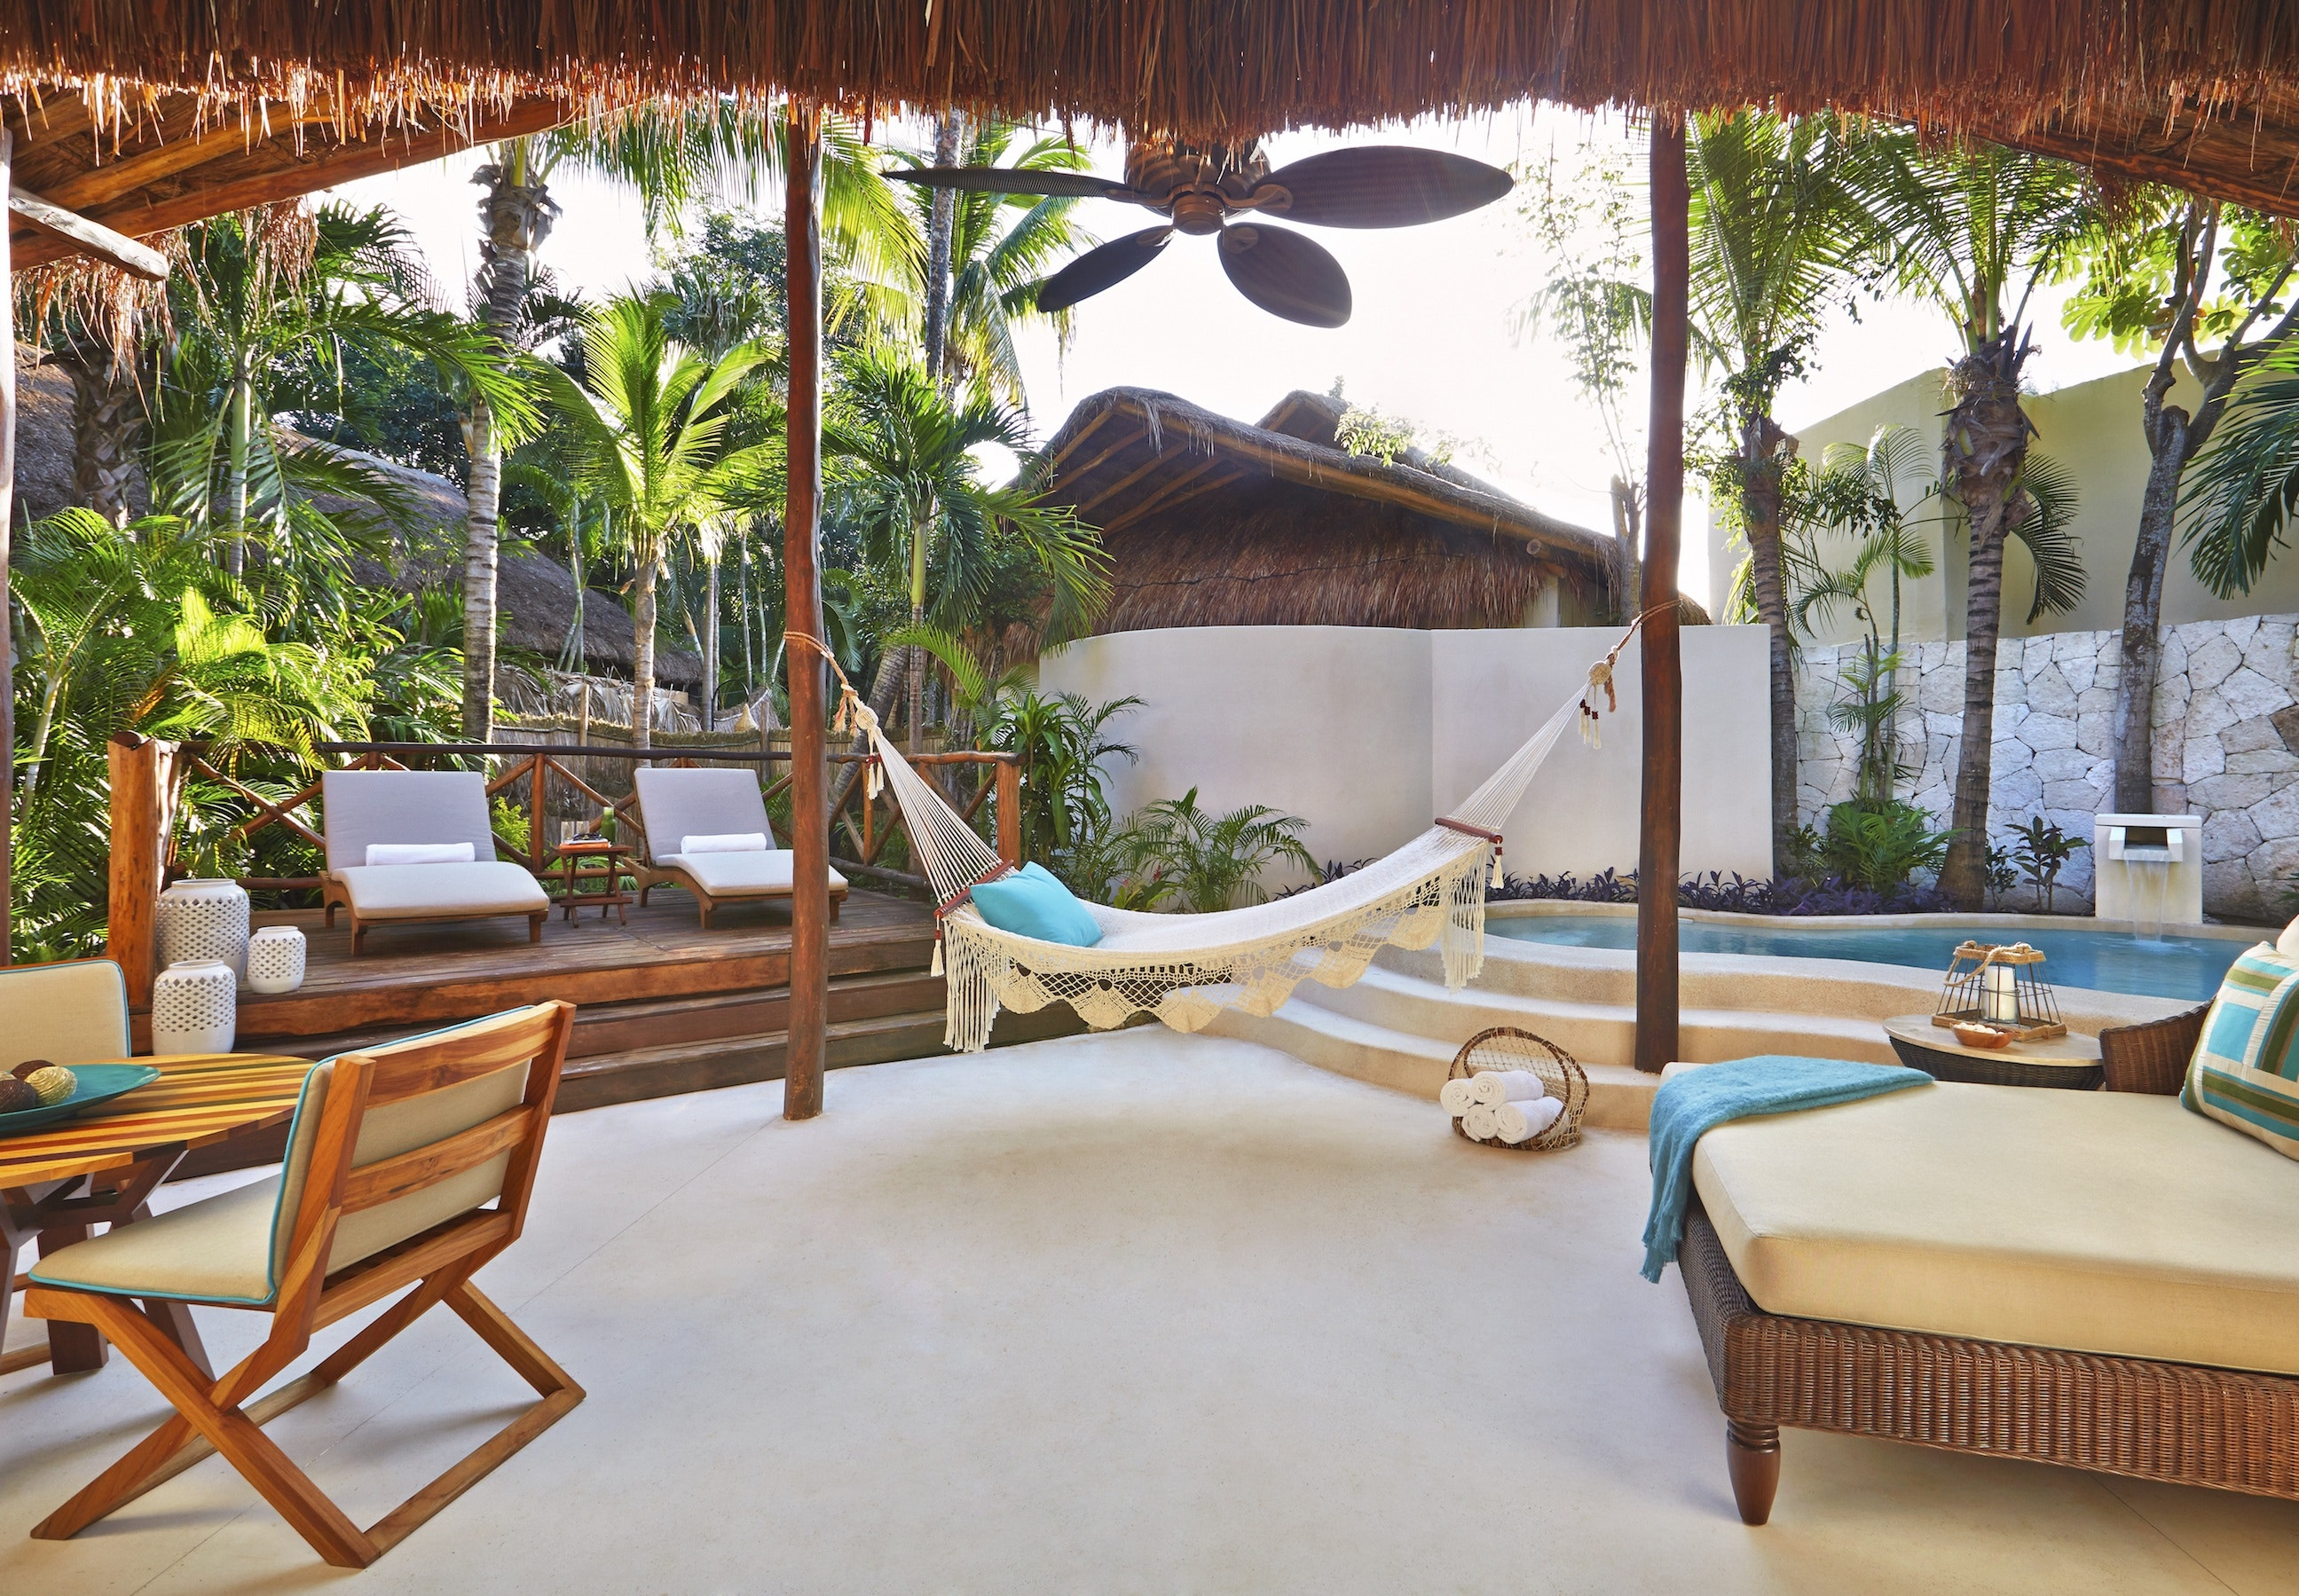 The Viceroy Riviera Maya's reduced rates could be just the antedote to those cold winter months.